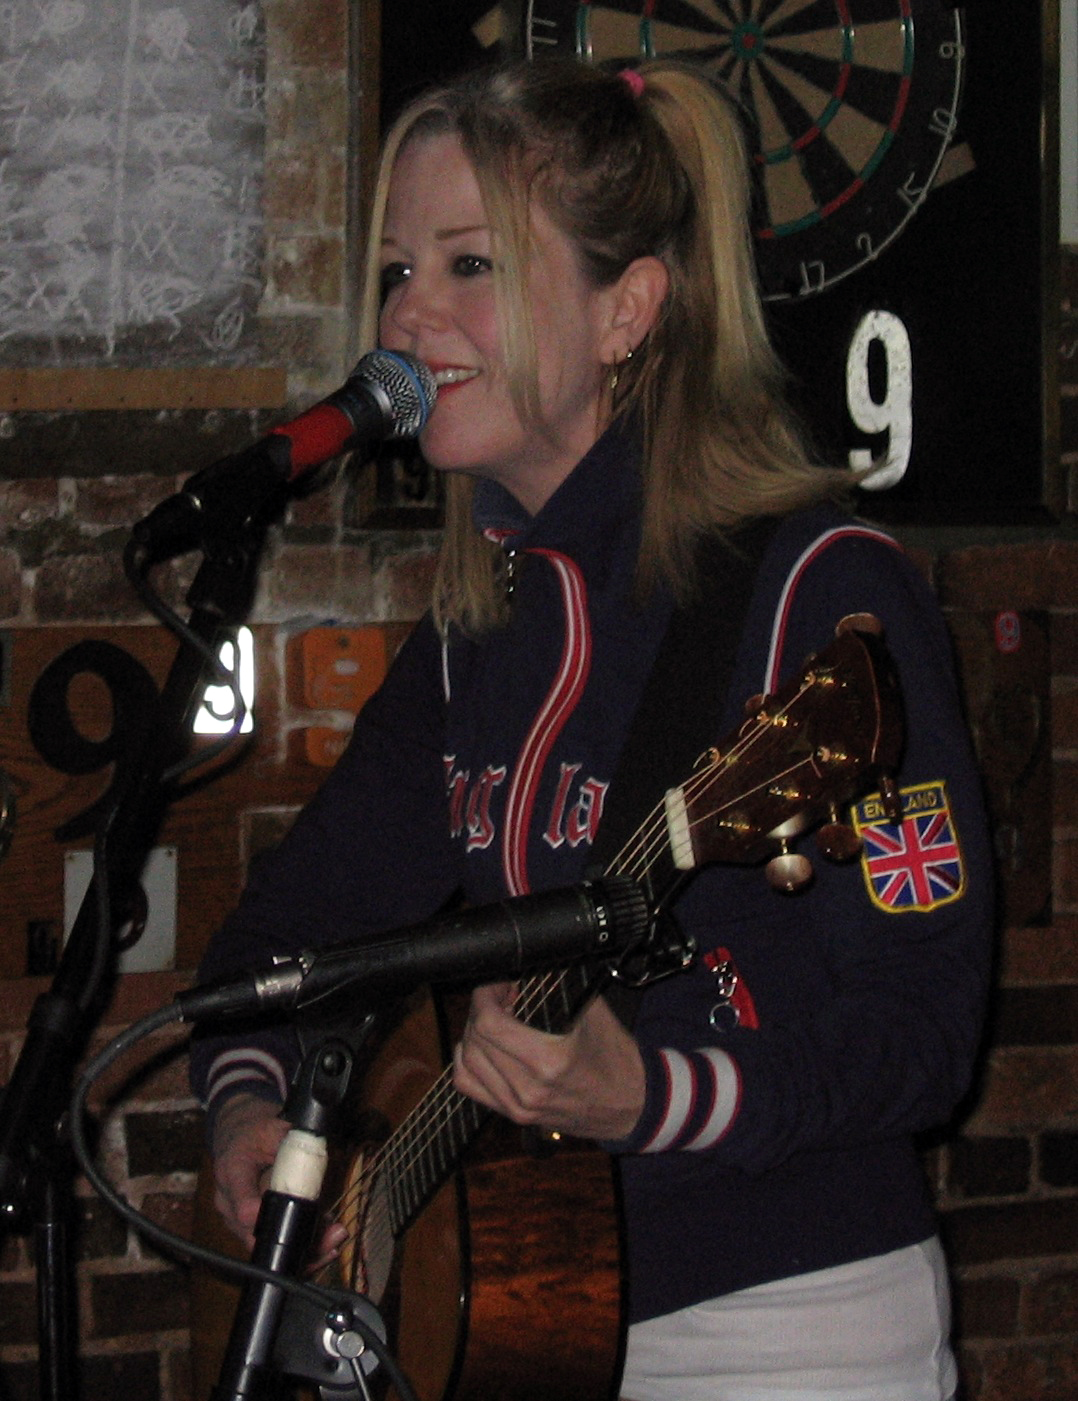 Acoustic Guitar Notes Mary Lou Lord - Wikipe...